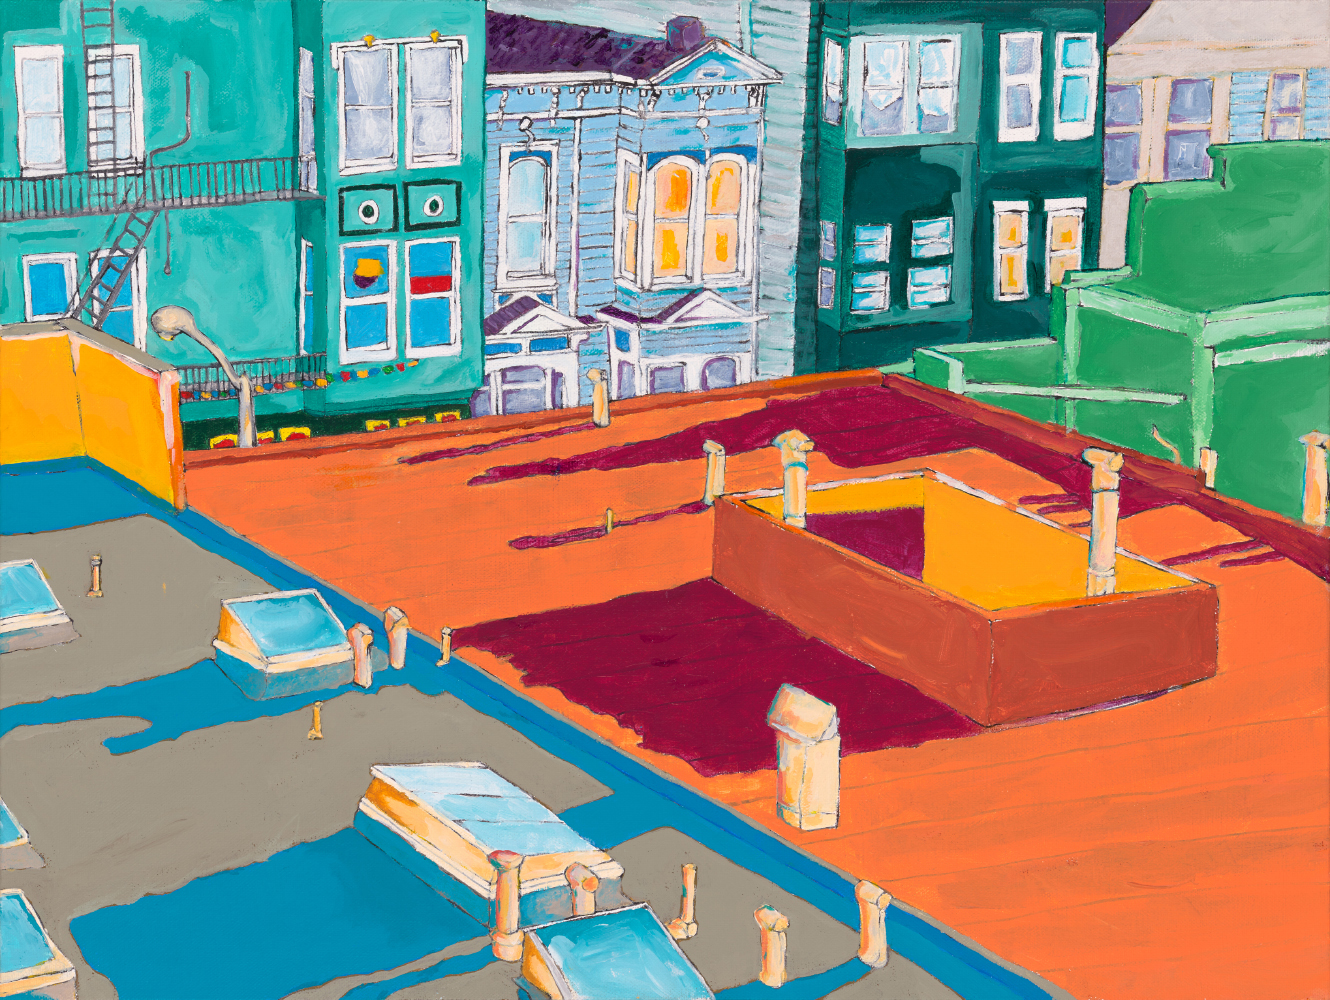 500 Block South West (Haight Street)